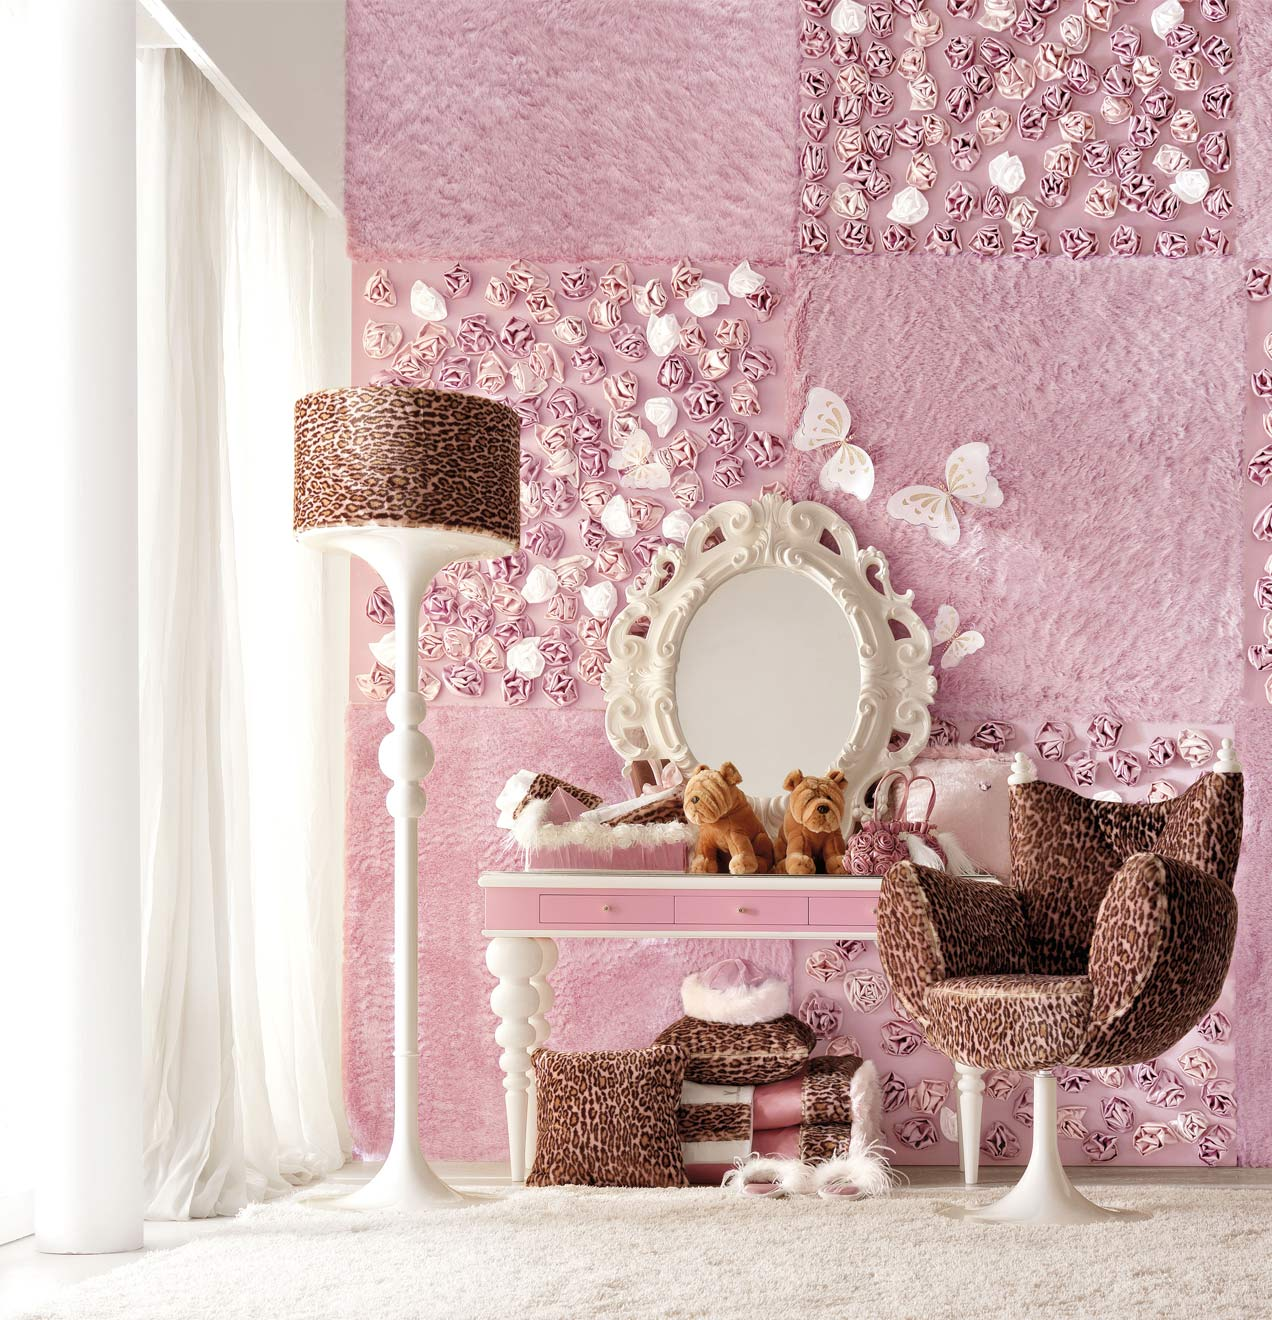 Girly Princess Bedroom Ideas: 32 Dreamy Bedroom Designs For Your Little Princess